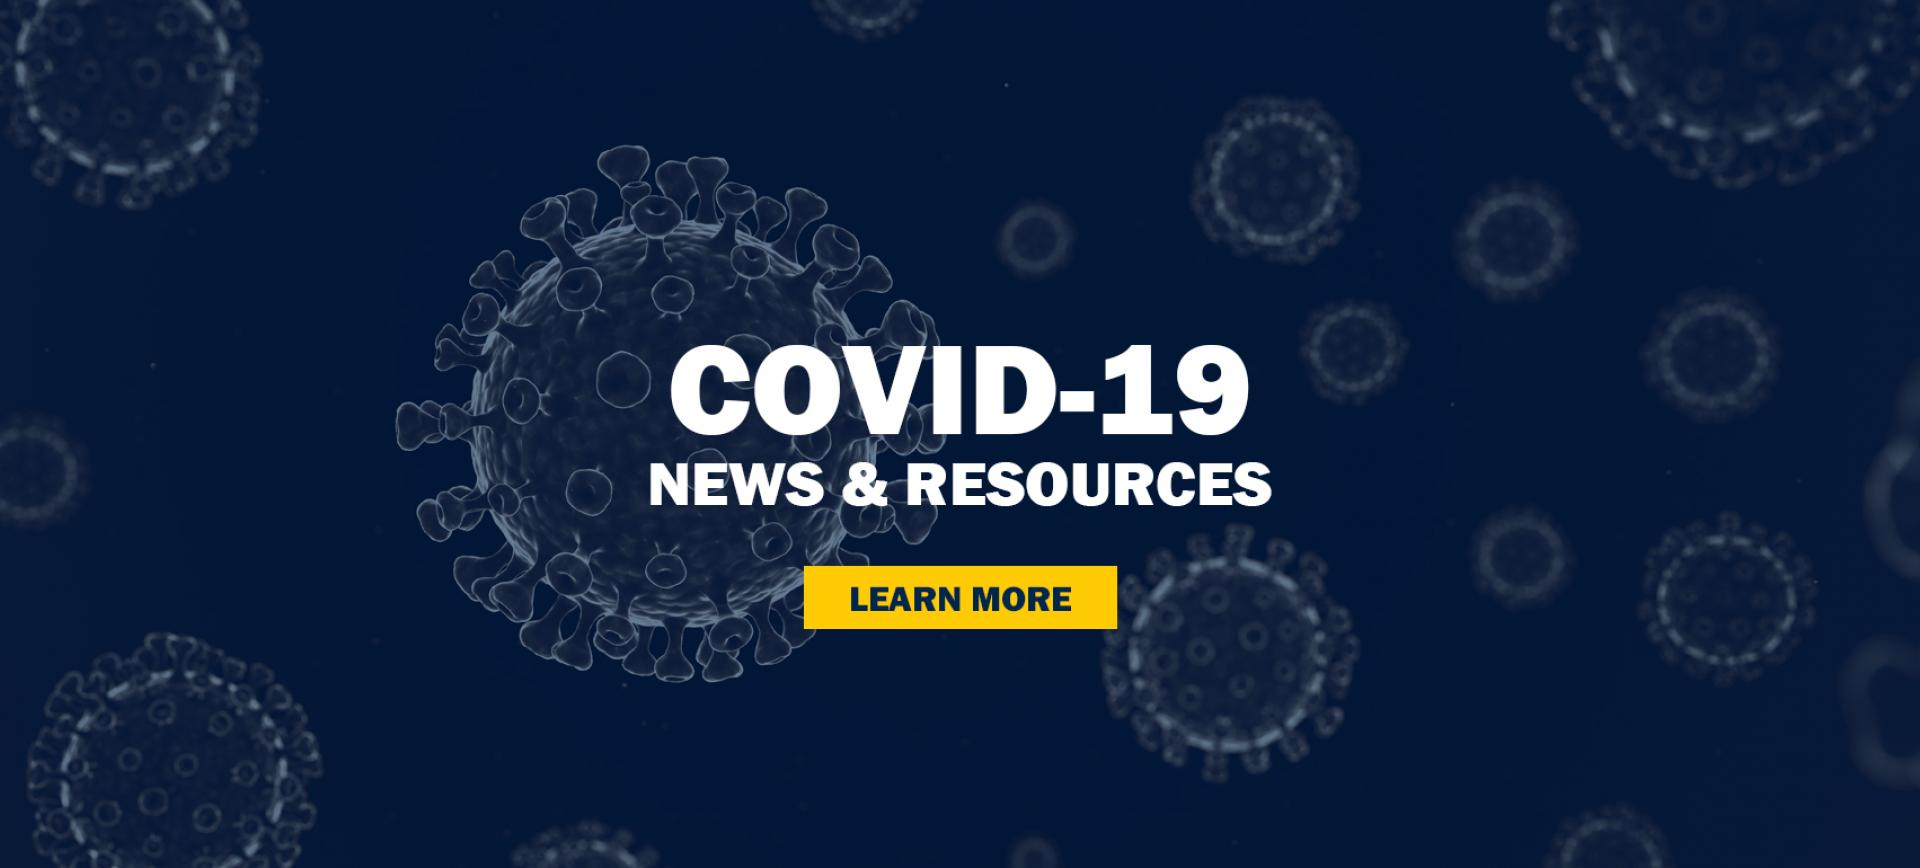 COVID-19 front page banner